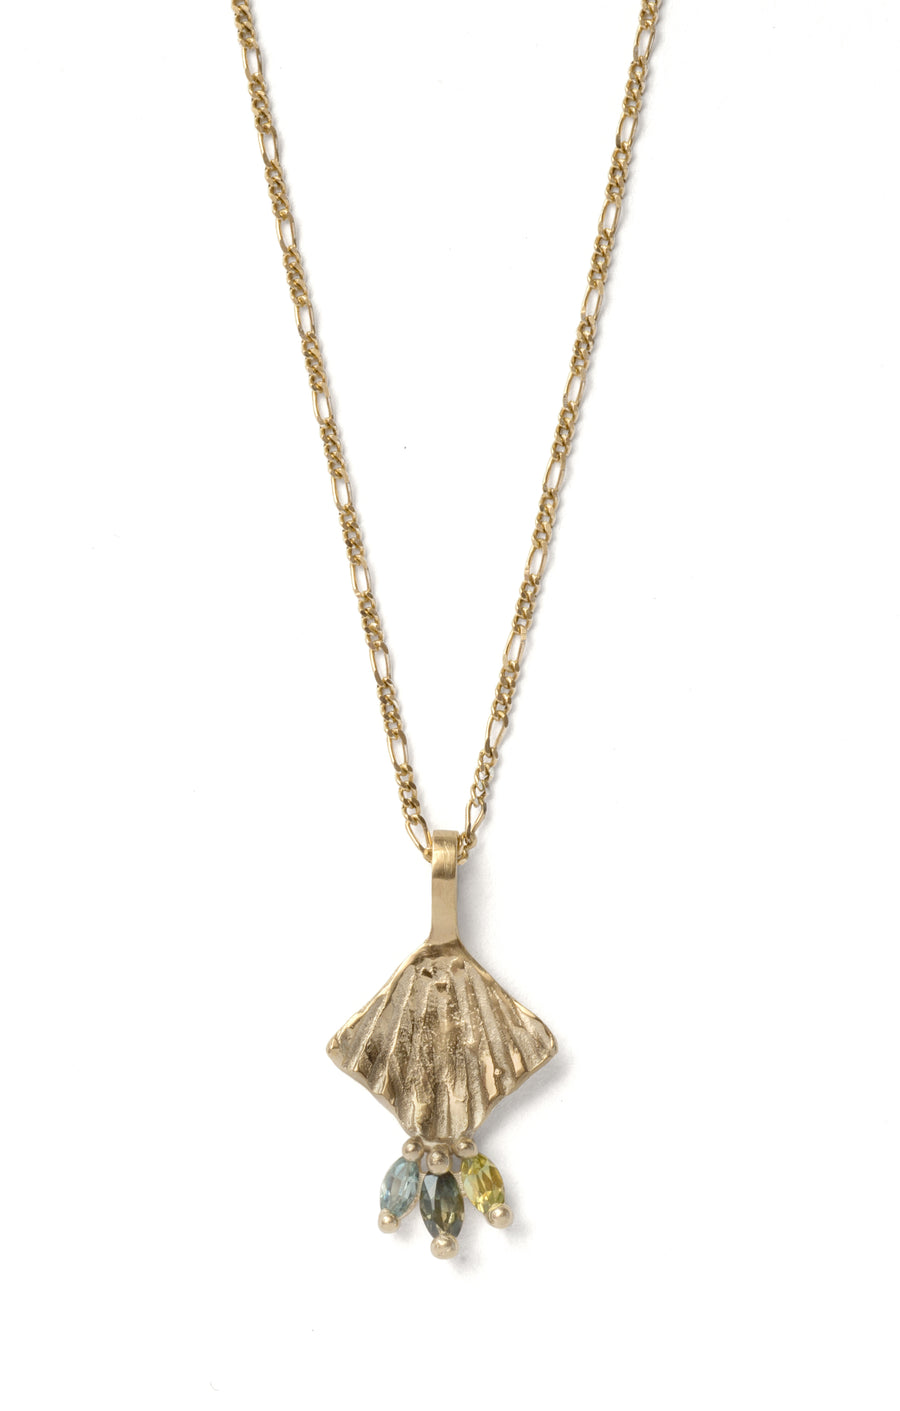 The Cannes Necklace - 9ct Gold.